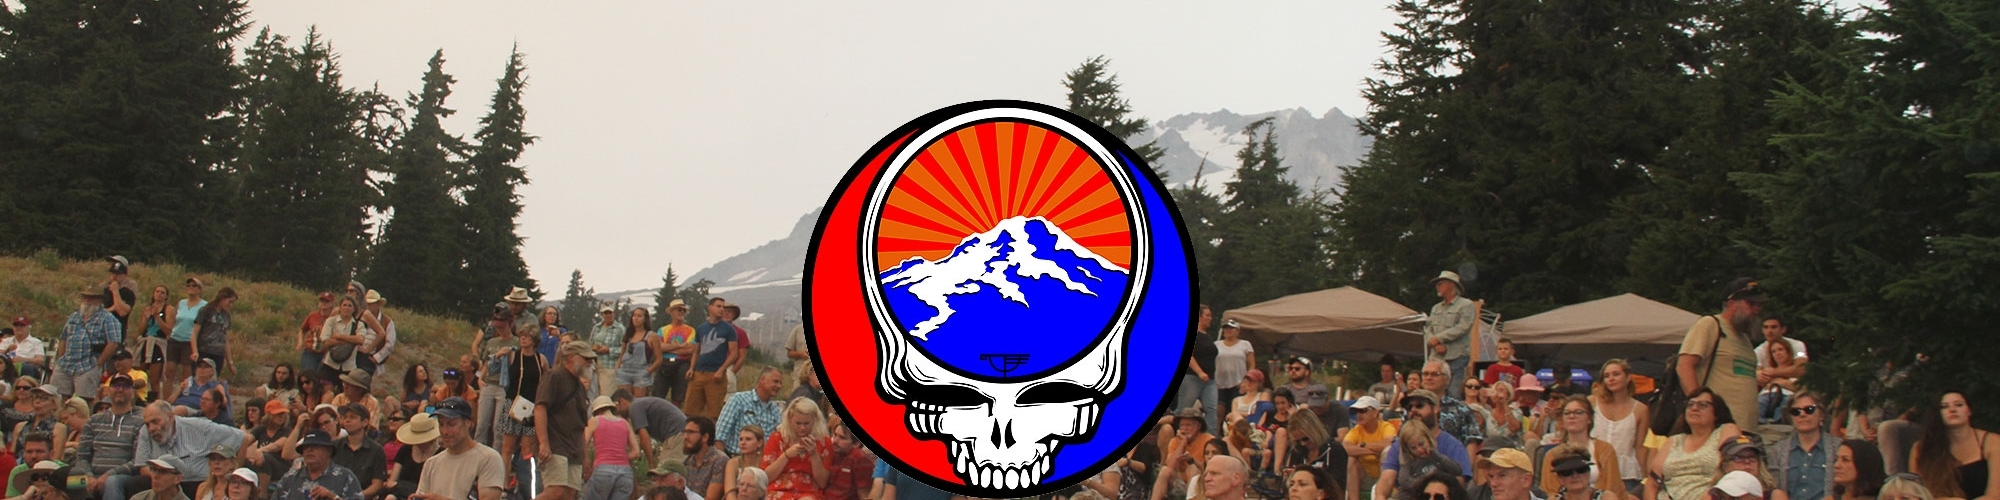 Timberline Labor Day Mountain Music Fest